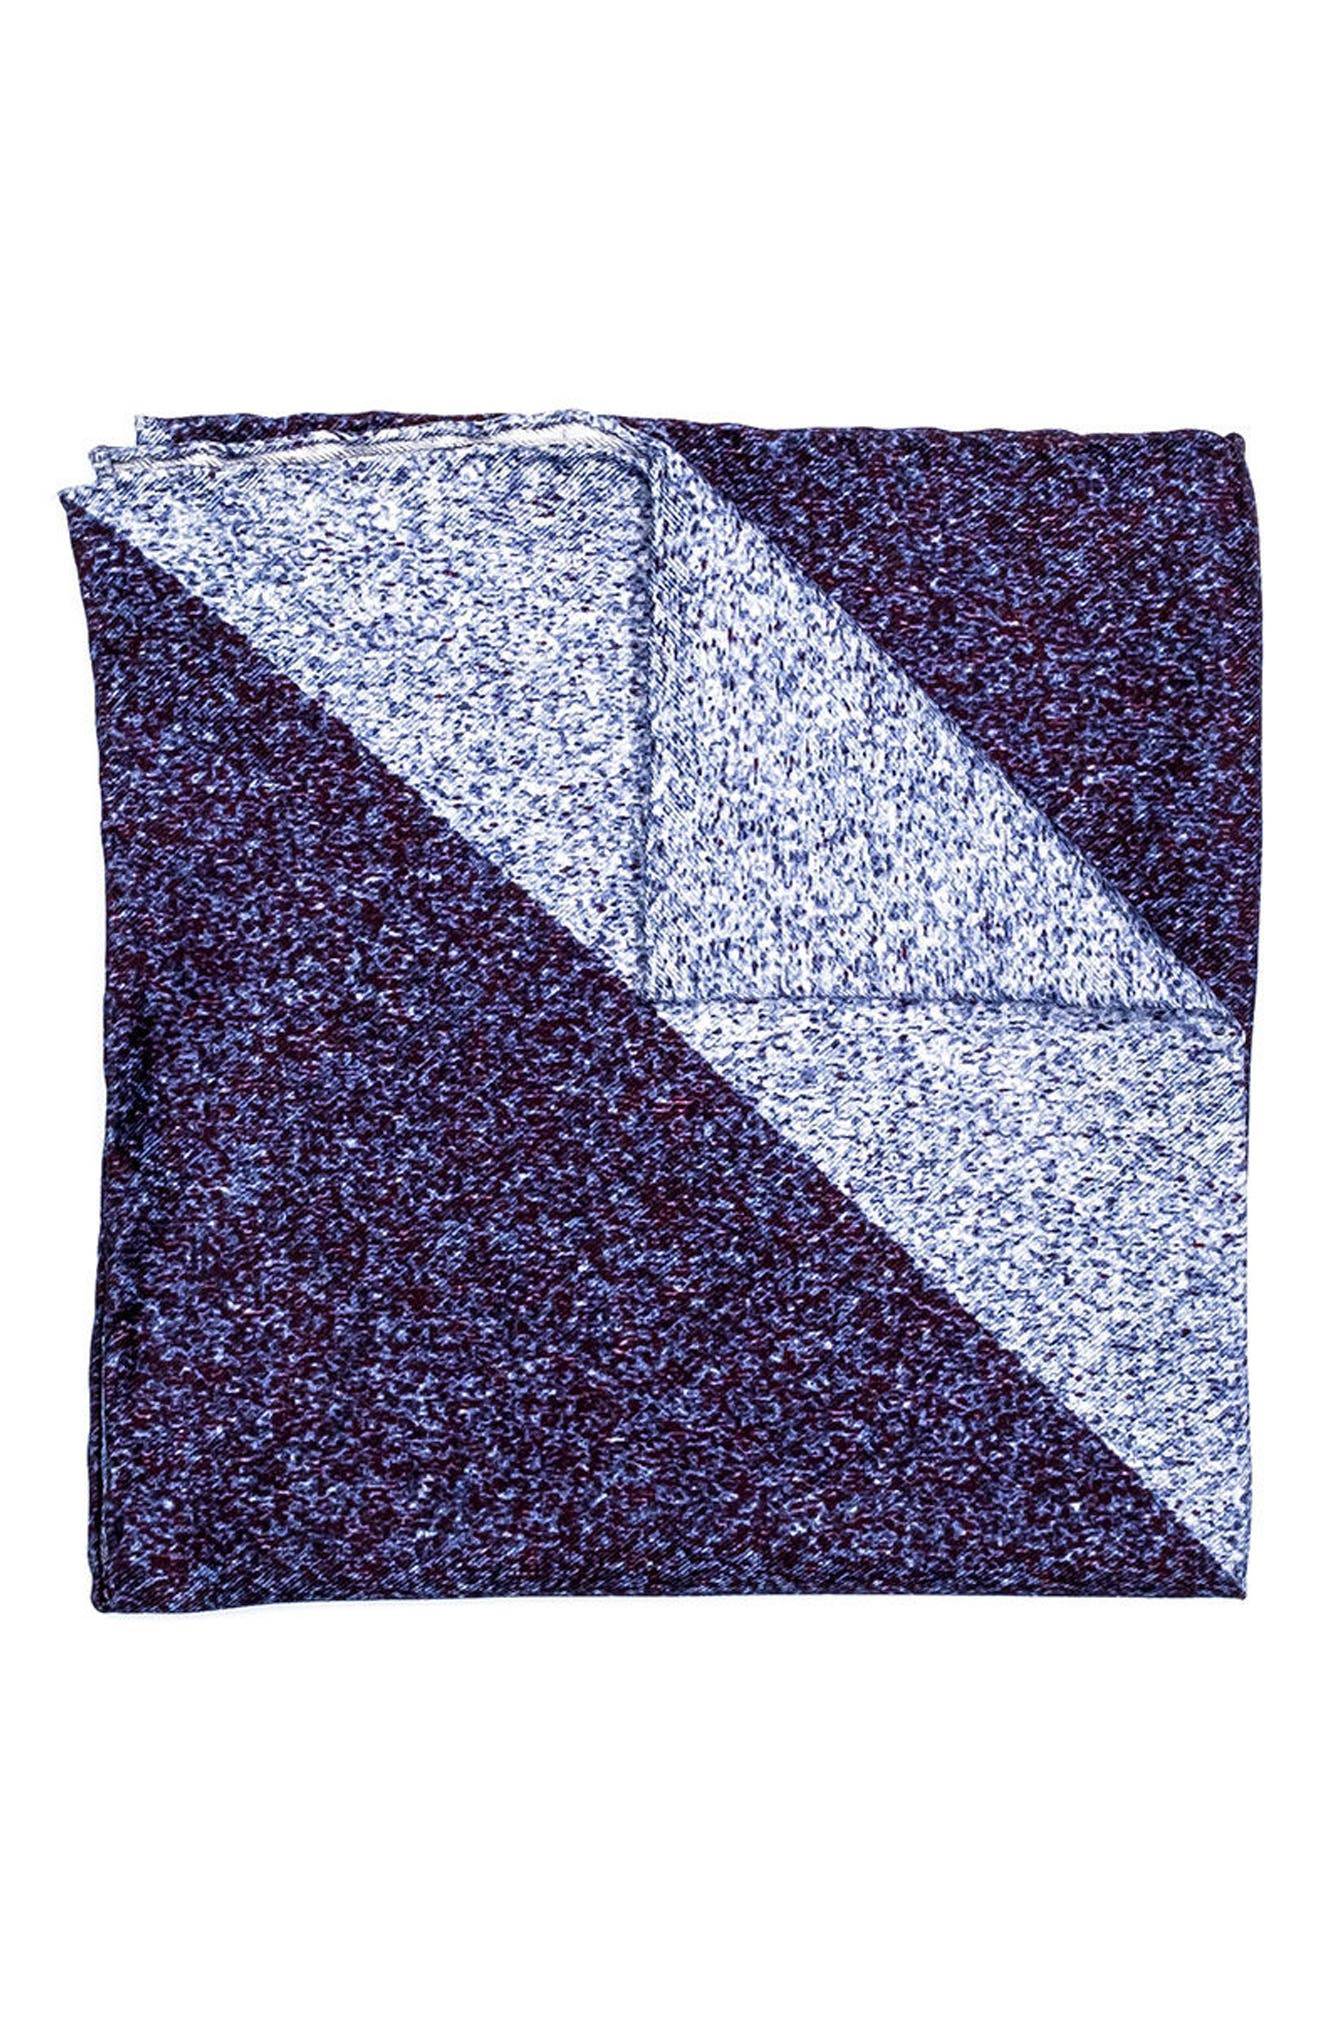 hook + ALBERT Geometric Silk Pocket Square